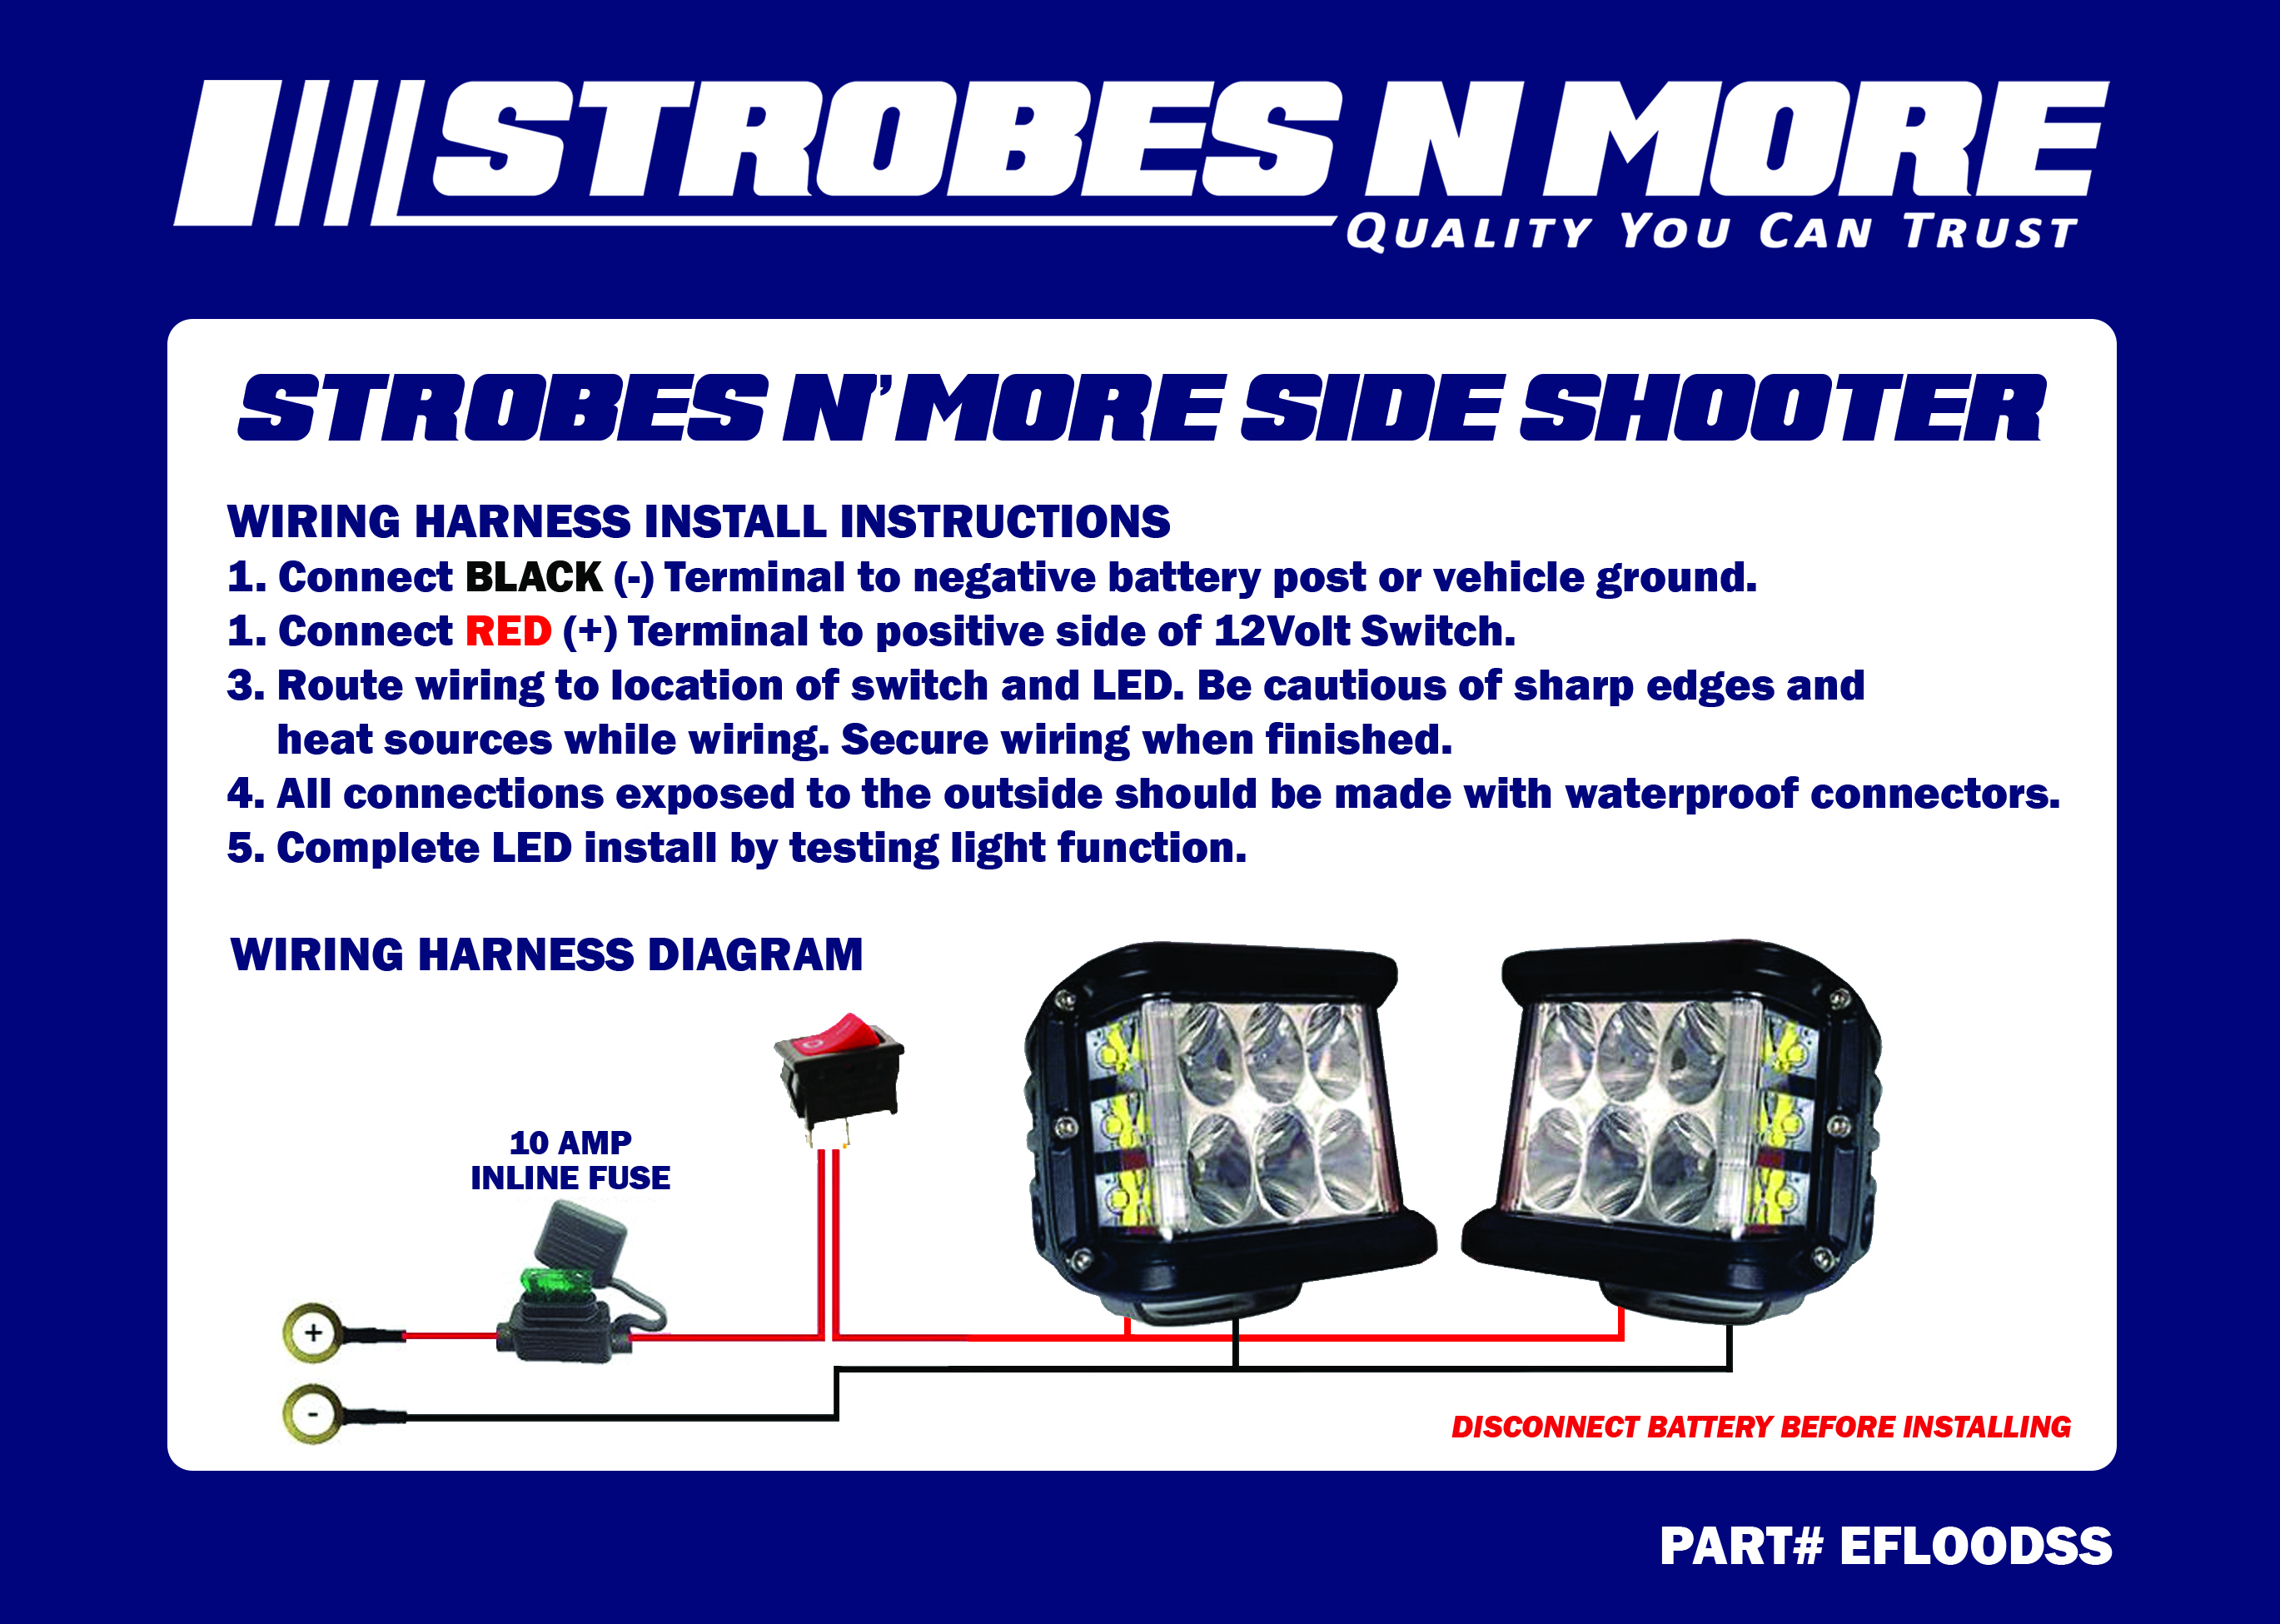 Admirable Strobes N More Side Shooter Floodlights Strobesnmore Com Wiring Digital Resources Remcakbiperorg